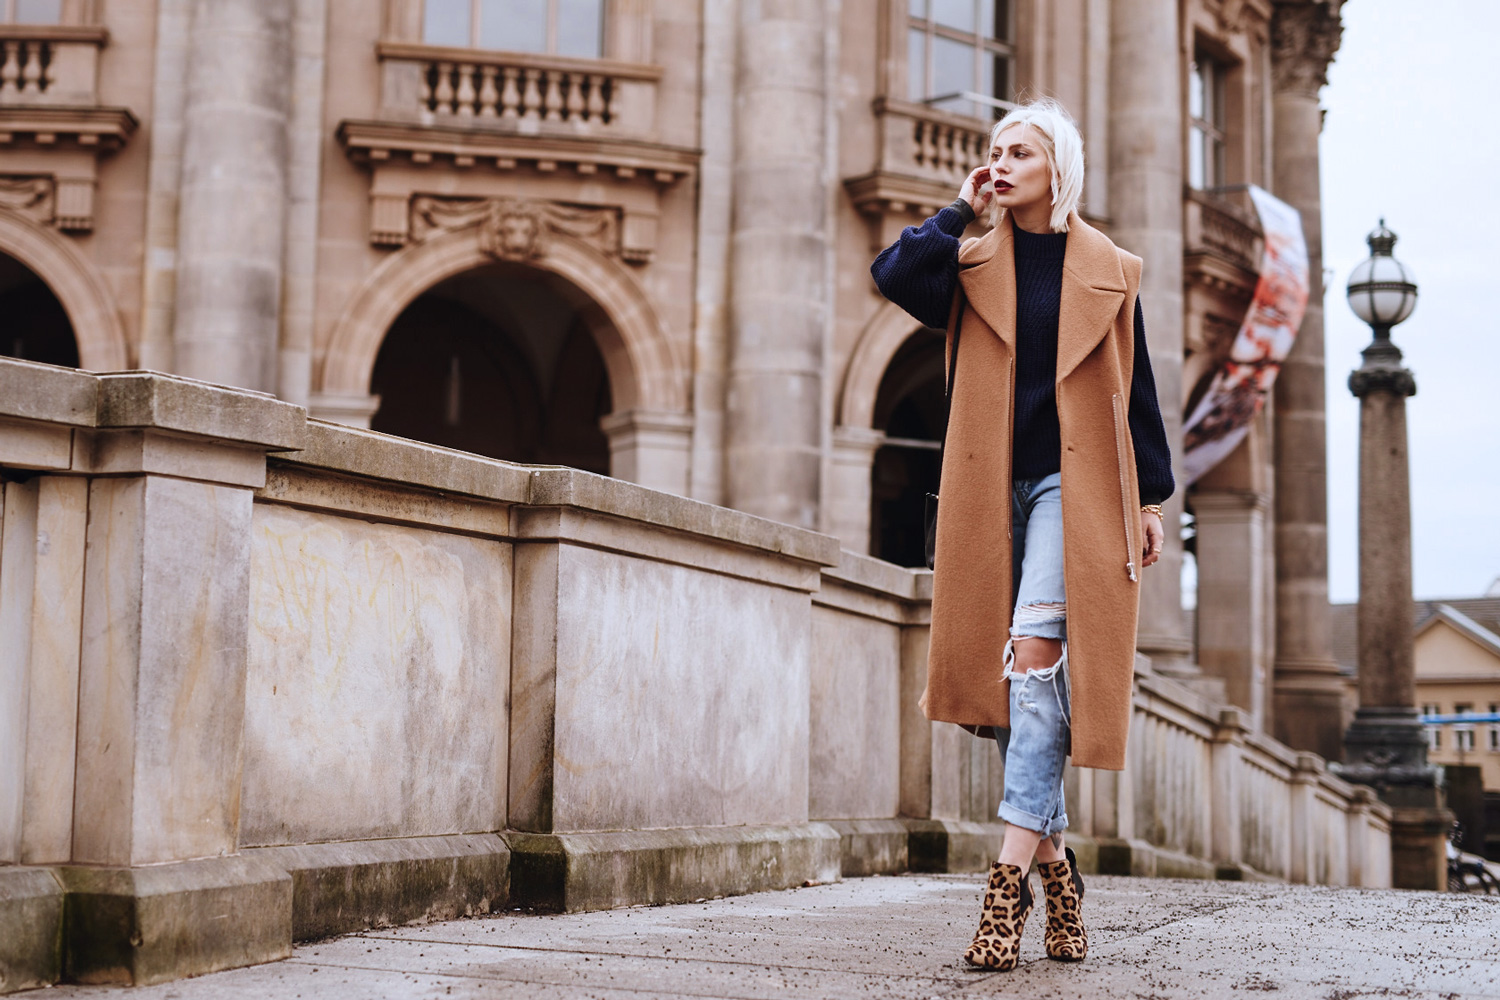 view more details on my blog | blue jeans & leo shoes | outfit, fashion, style